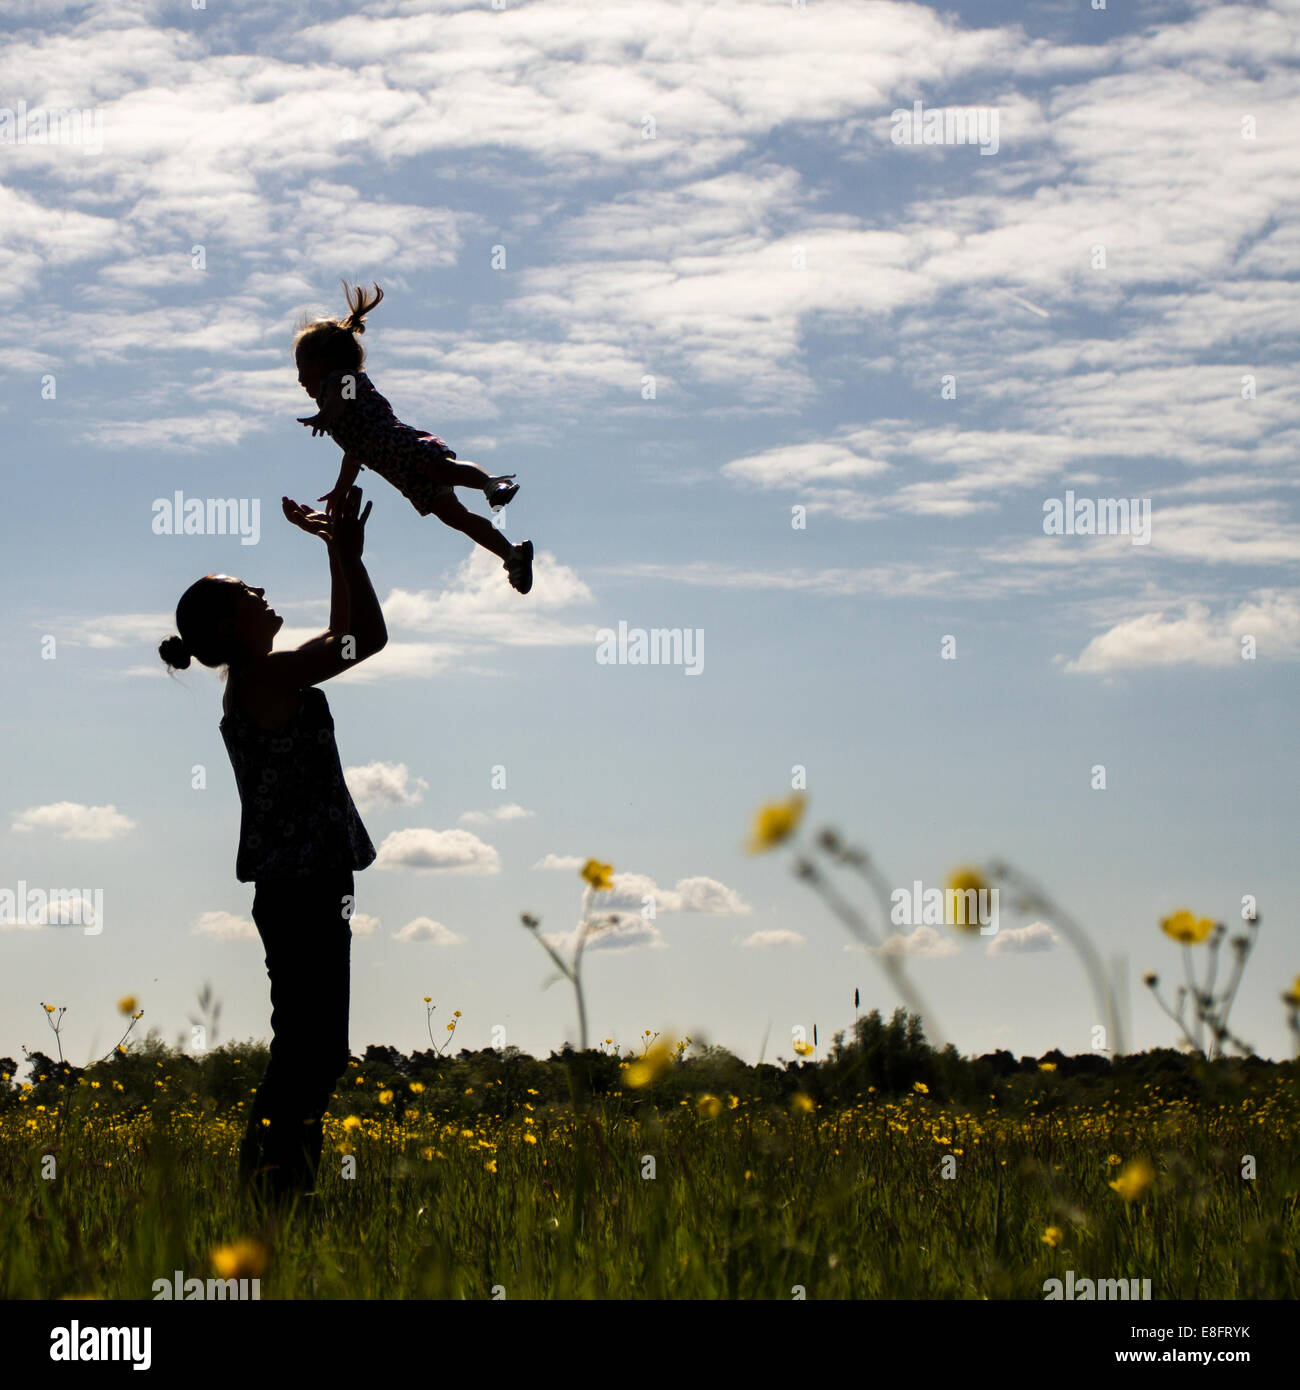 Silhouette of mother throwing son in air - Stock Image